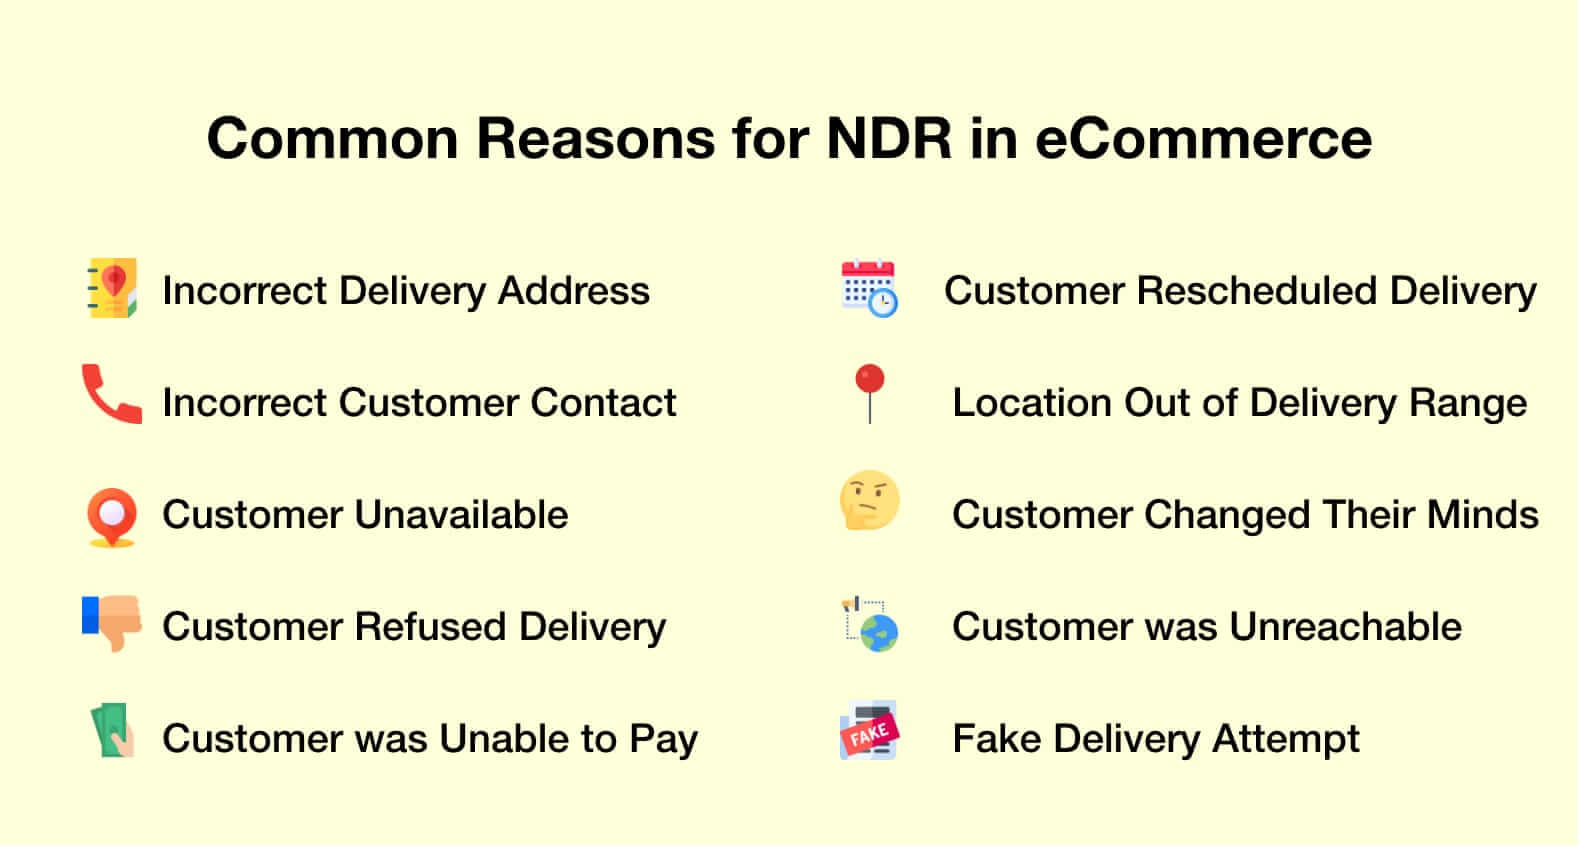 Common Reasons for NDR in eCommerce